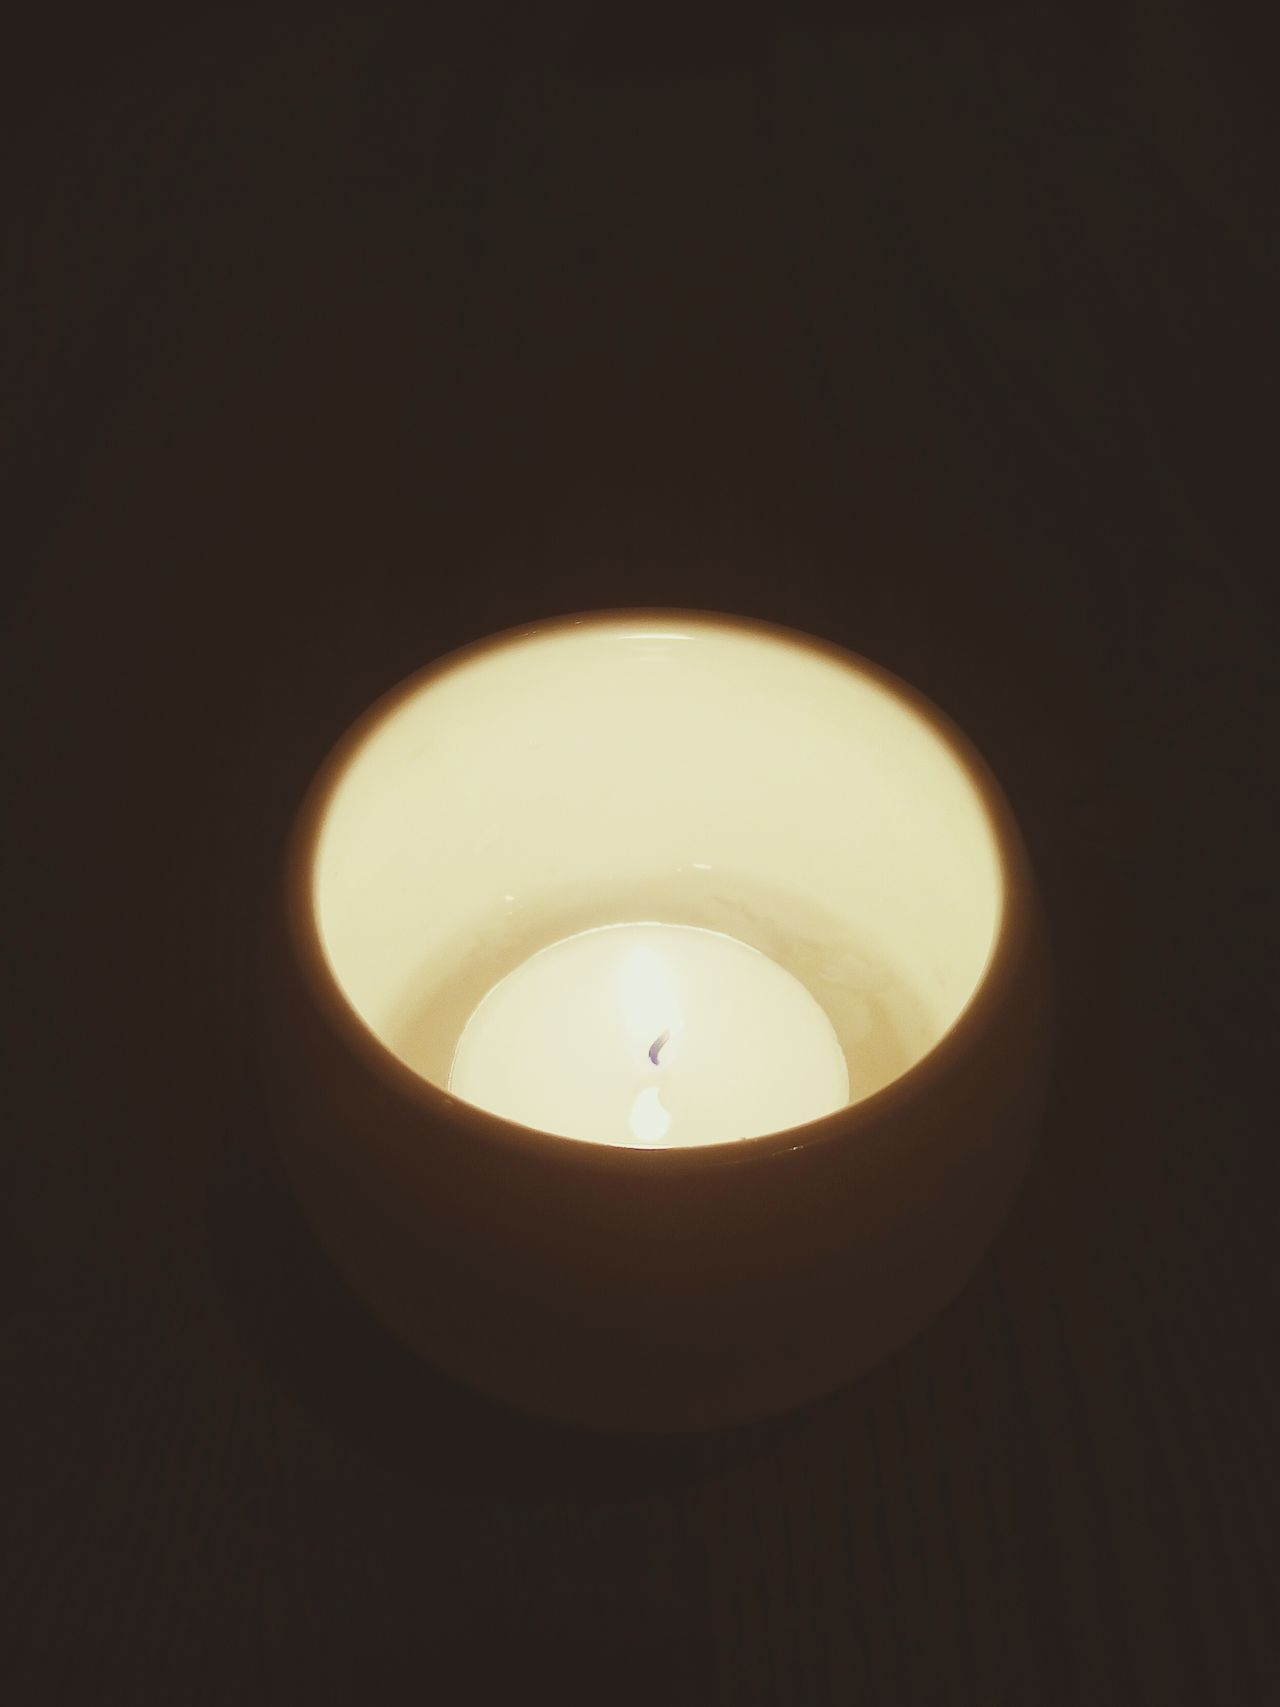 Little light of hope always keeps us going. Flame Candle Black Background Illuminated Glowing Burning Heat - Temperature Lighting Equipment No People Indoors  Close-up Day Eyeem Philippines EyeEmNewHere EyeEmNew Here Mobile Phone Photography